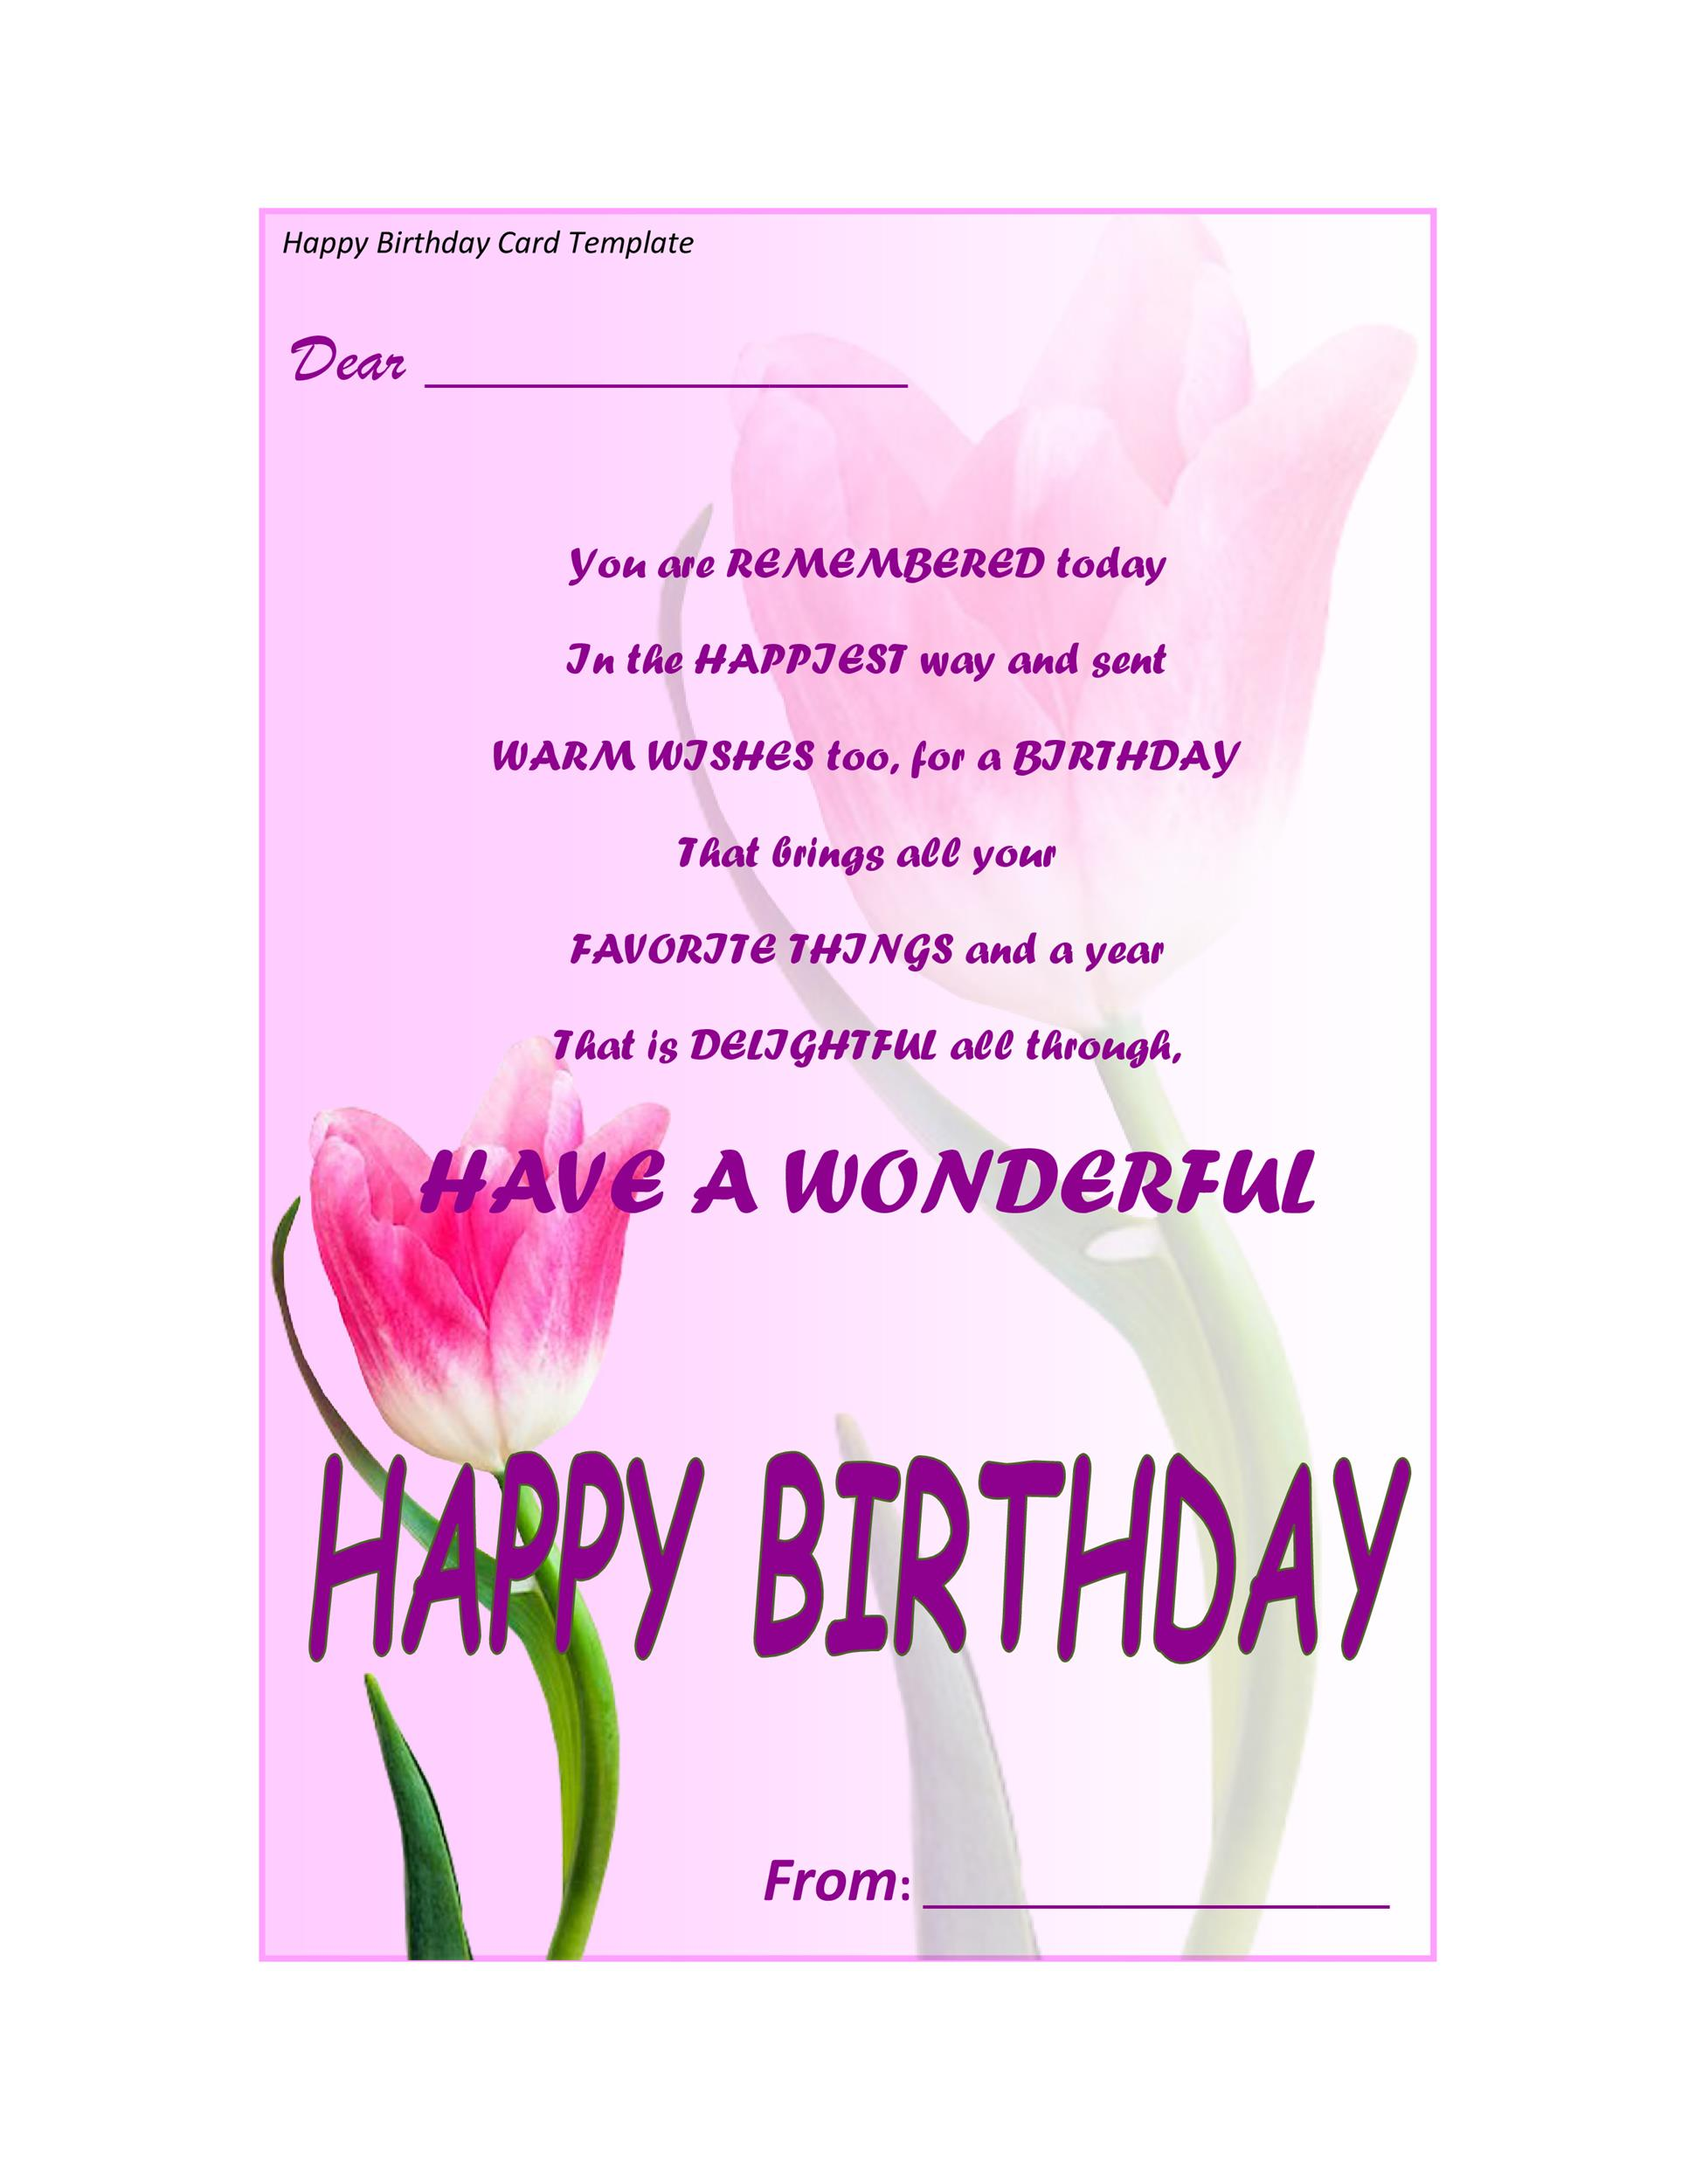 Free birthday card template 32